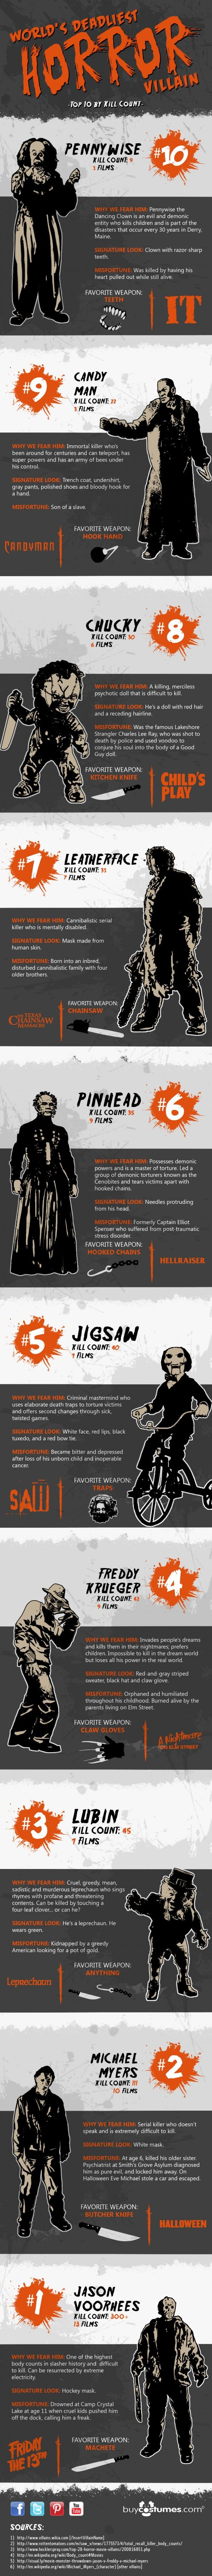 Top 10 Worlds Deadliest Horror Movie Villains--I like the list but he needs to check his facts, they're a little off.